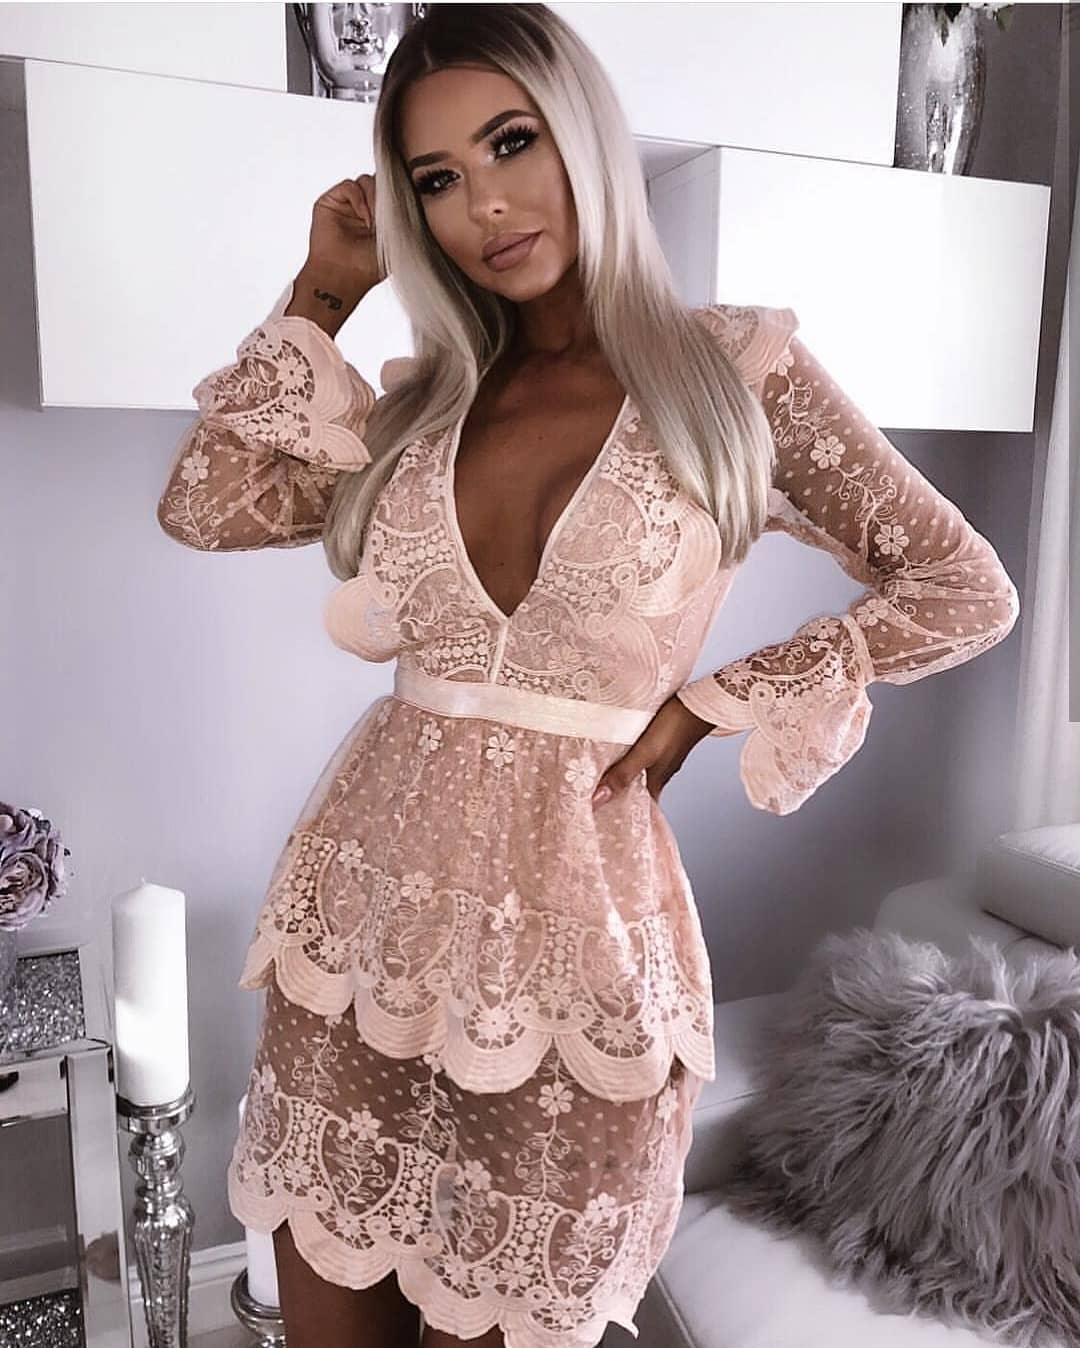 Deep V-neck Dress In Blush Semi Sheer Lace For Summer Cocktail Parties 2020